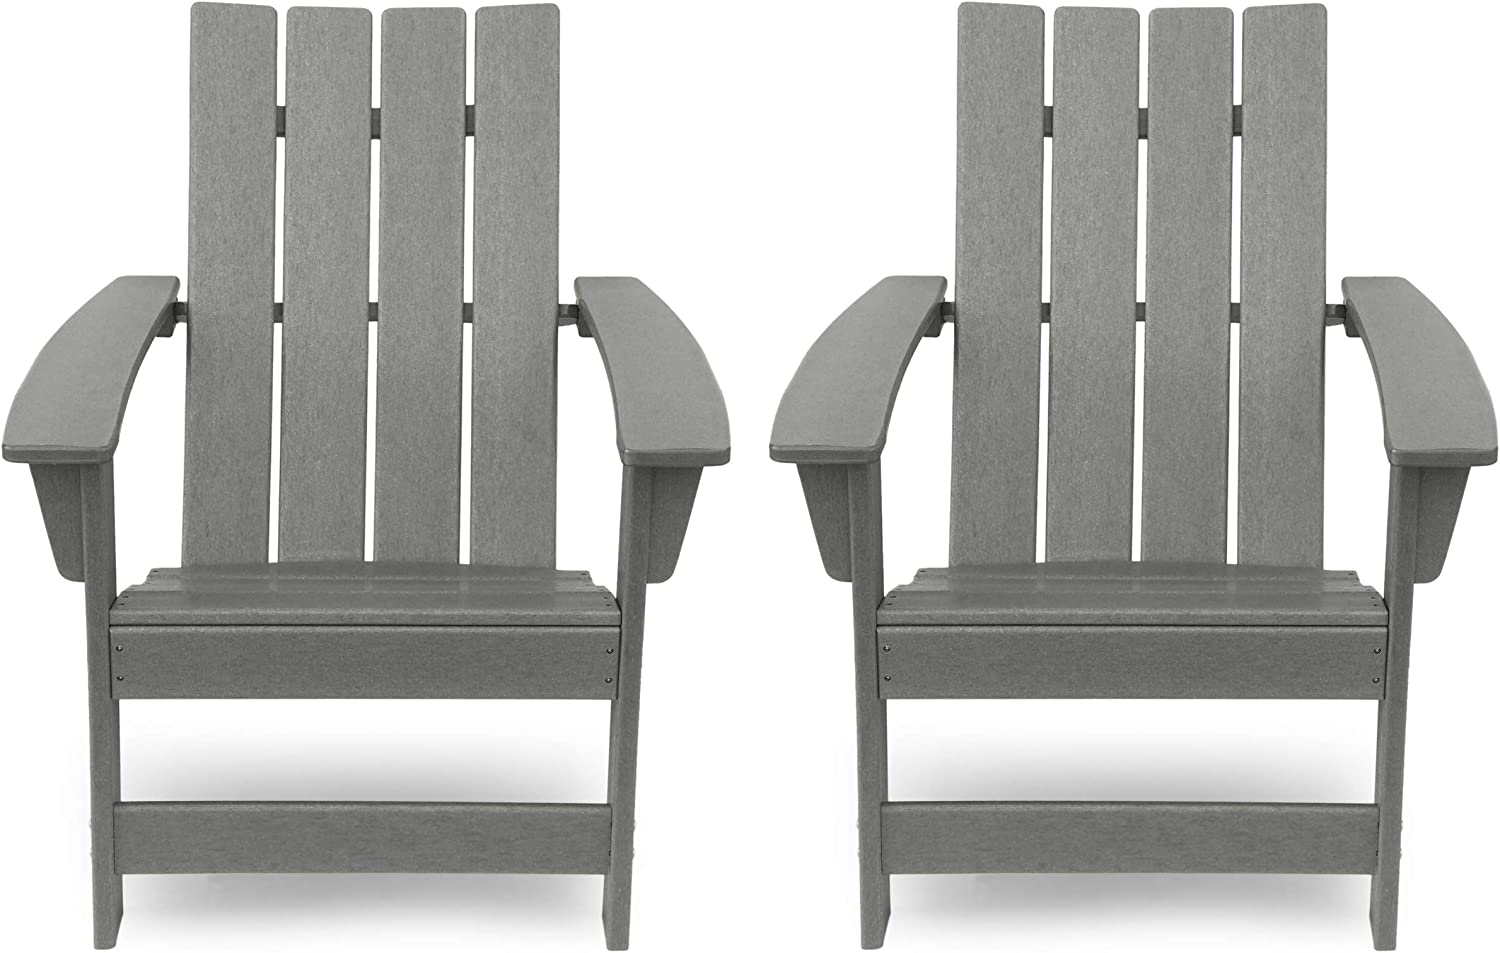 Christopher Knight Home 312639 Robert Outdoor Contemporary Adirondack Chair (Set of 2), Gray